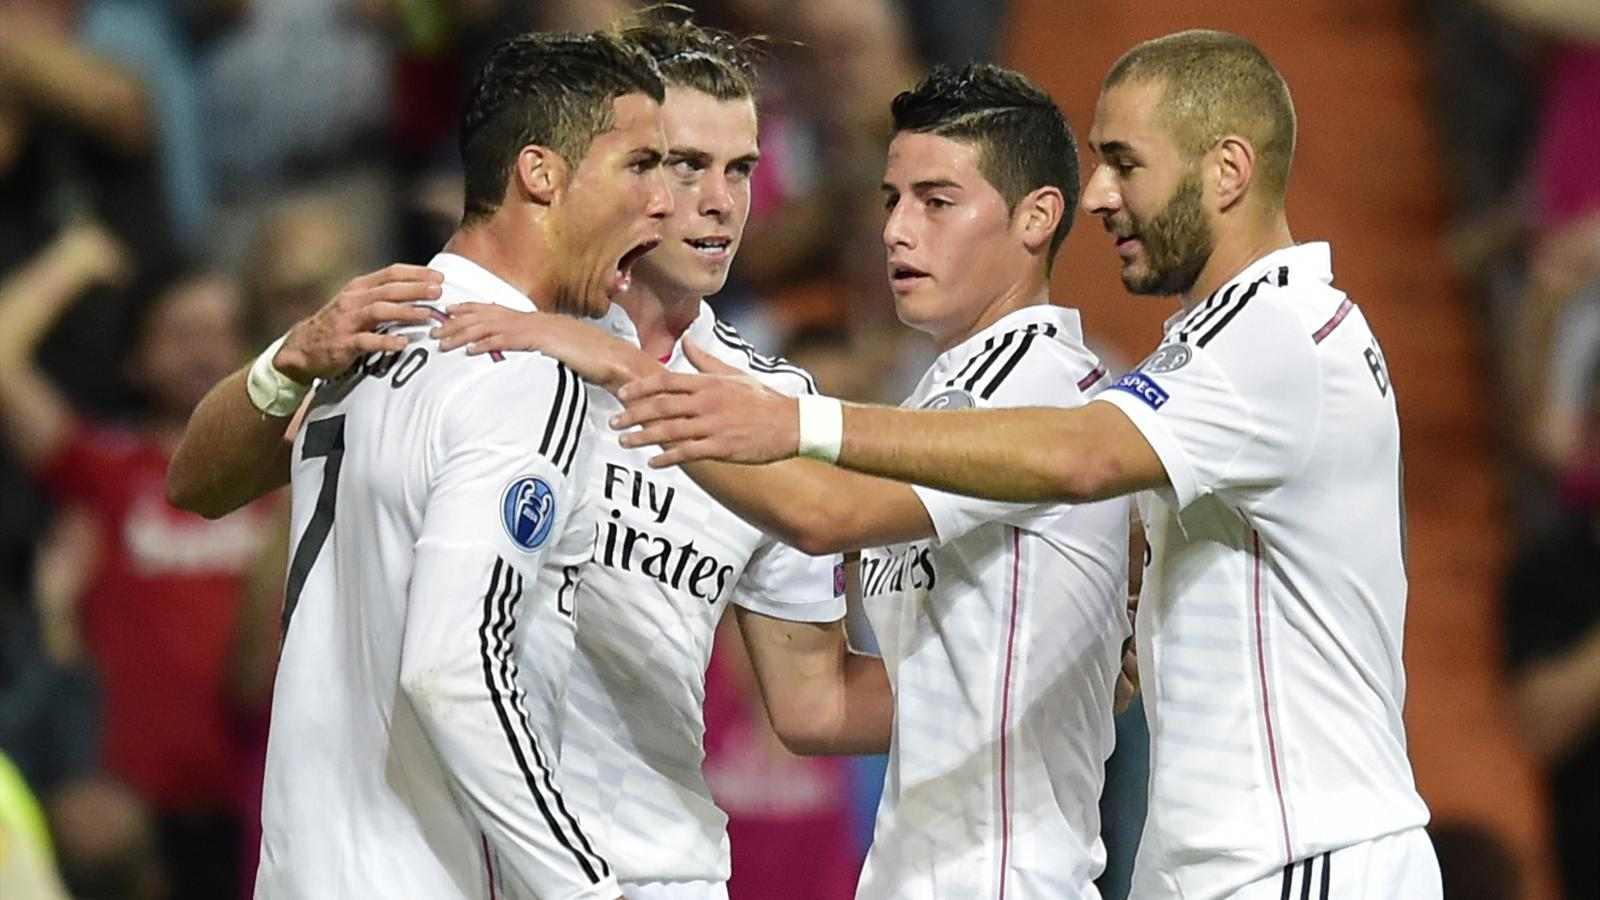 Real Madrid's Portuguese forward Cristiano Ronaldo (L), Real Madrid's Welsh forward Gareth Bale (C), Real Madrid's French forward Karim Benzema (R)and Real Madrid's Colombian midfielder James Rodriguez